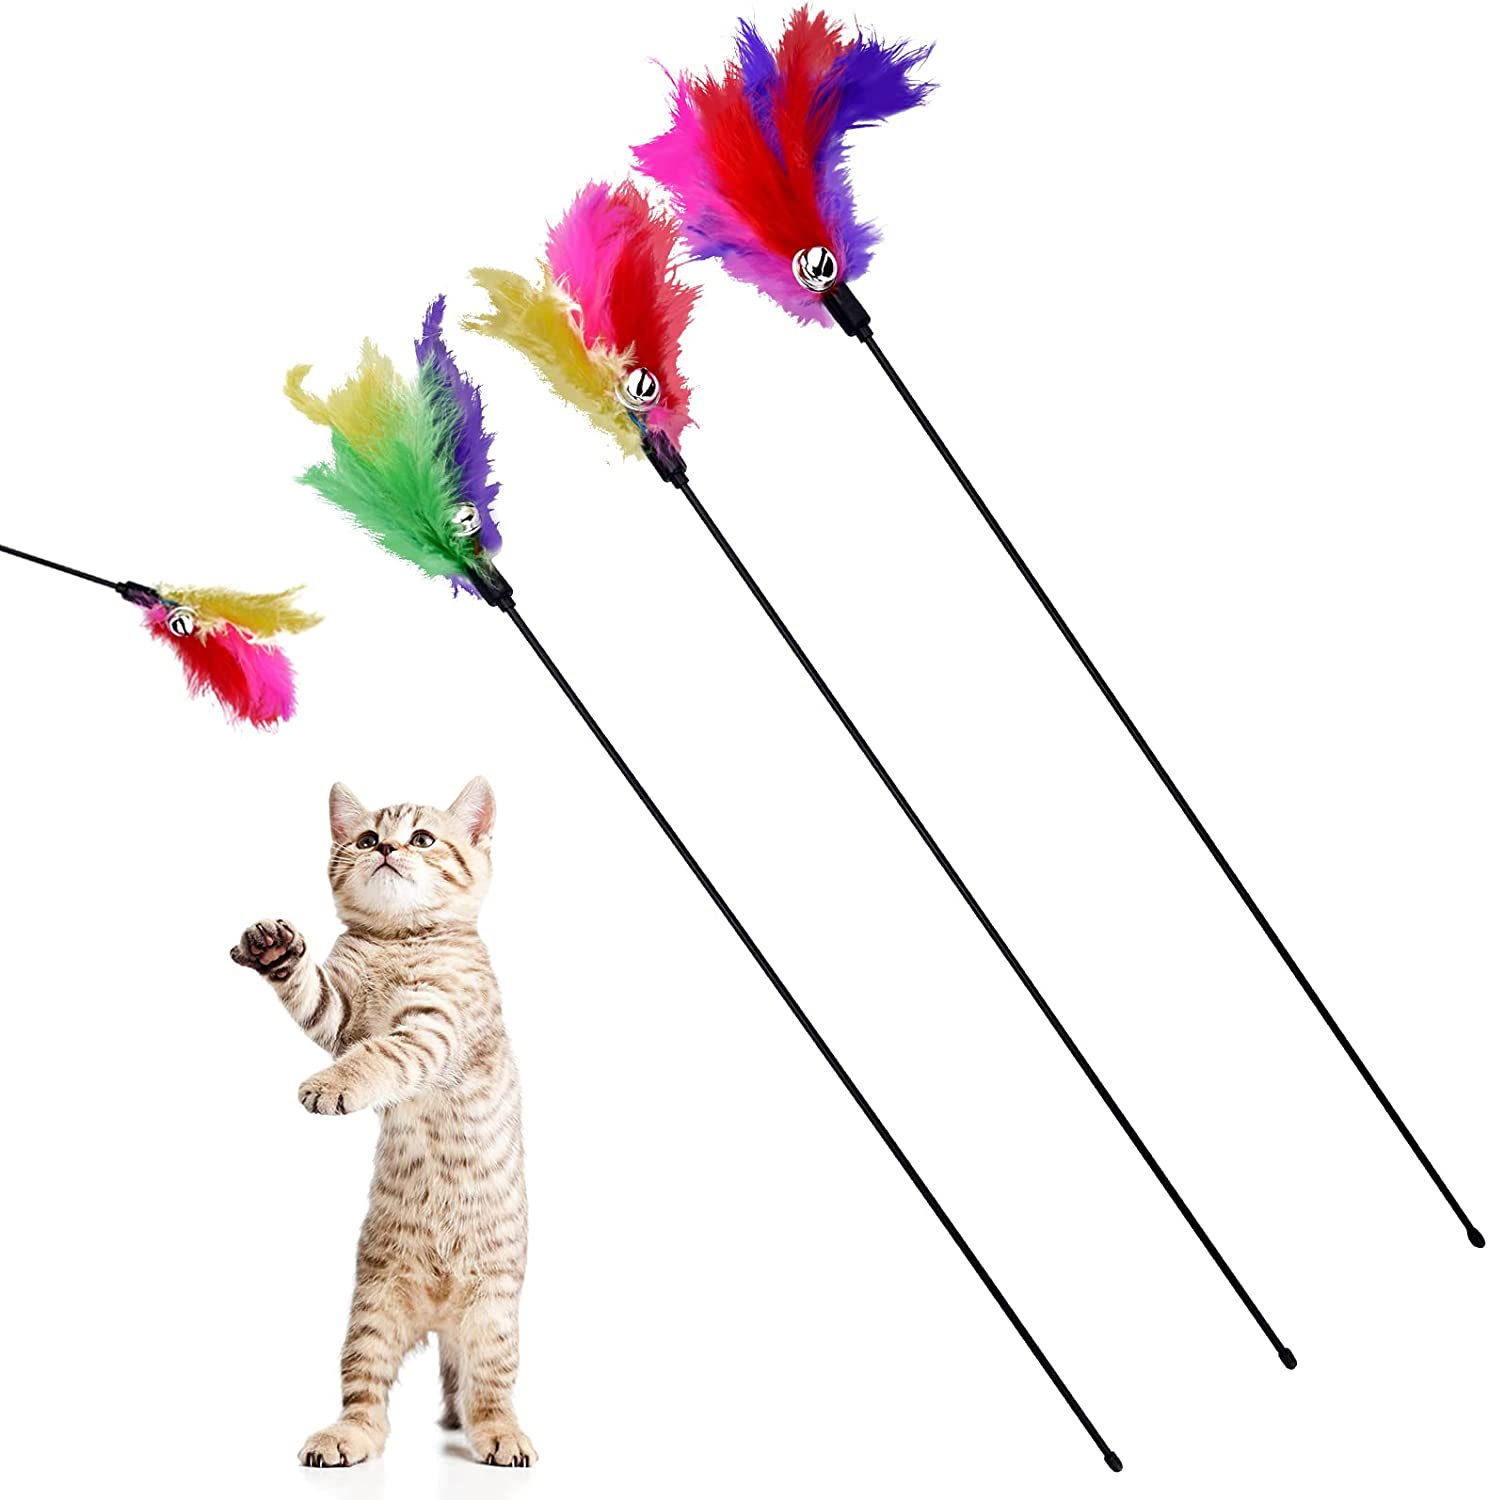 BINGPET Cat Toys Color Vary Feather Teaser Wand and Virginia Beach Mall fo Max 52% OFF Exerciser